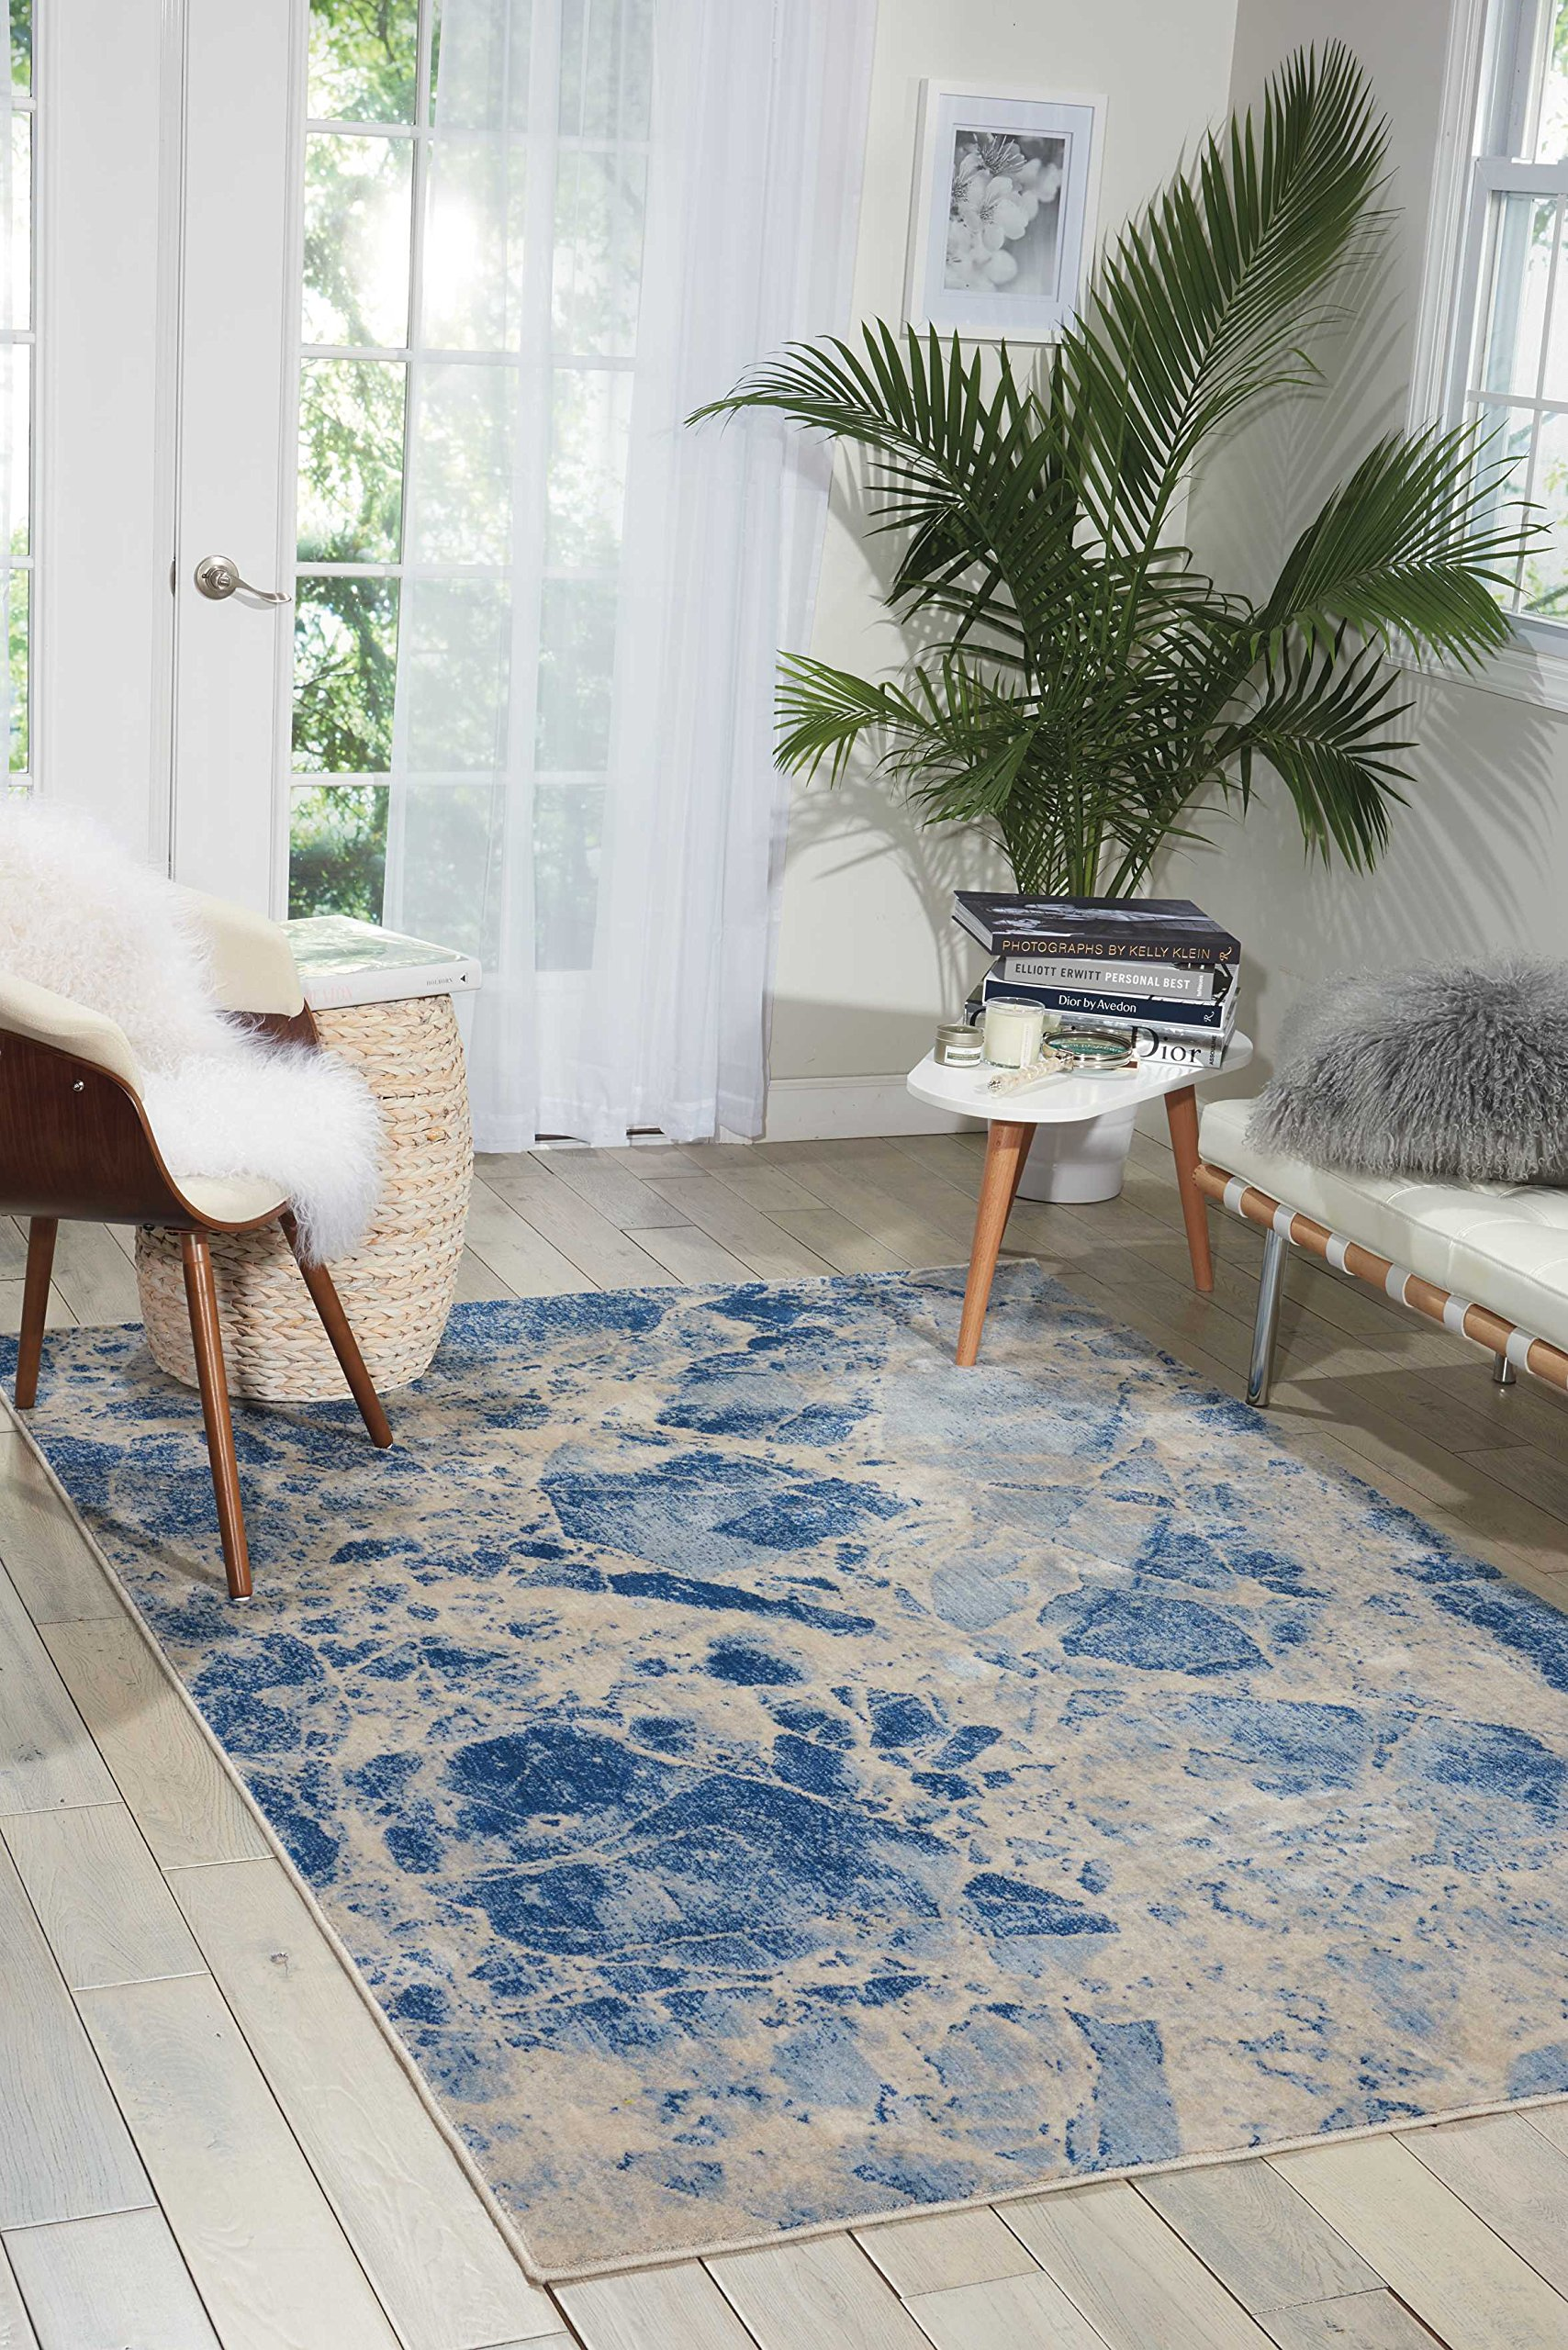 Nourison Somerset ST745 Modern Bohemian Blue Area Rug 3 Feet 6 Inches 5 Feet 6 Inches,3'6'' x 5'6''